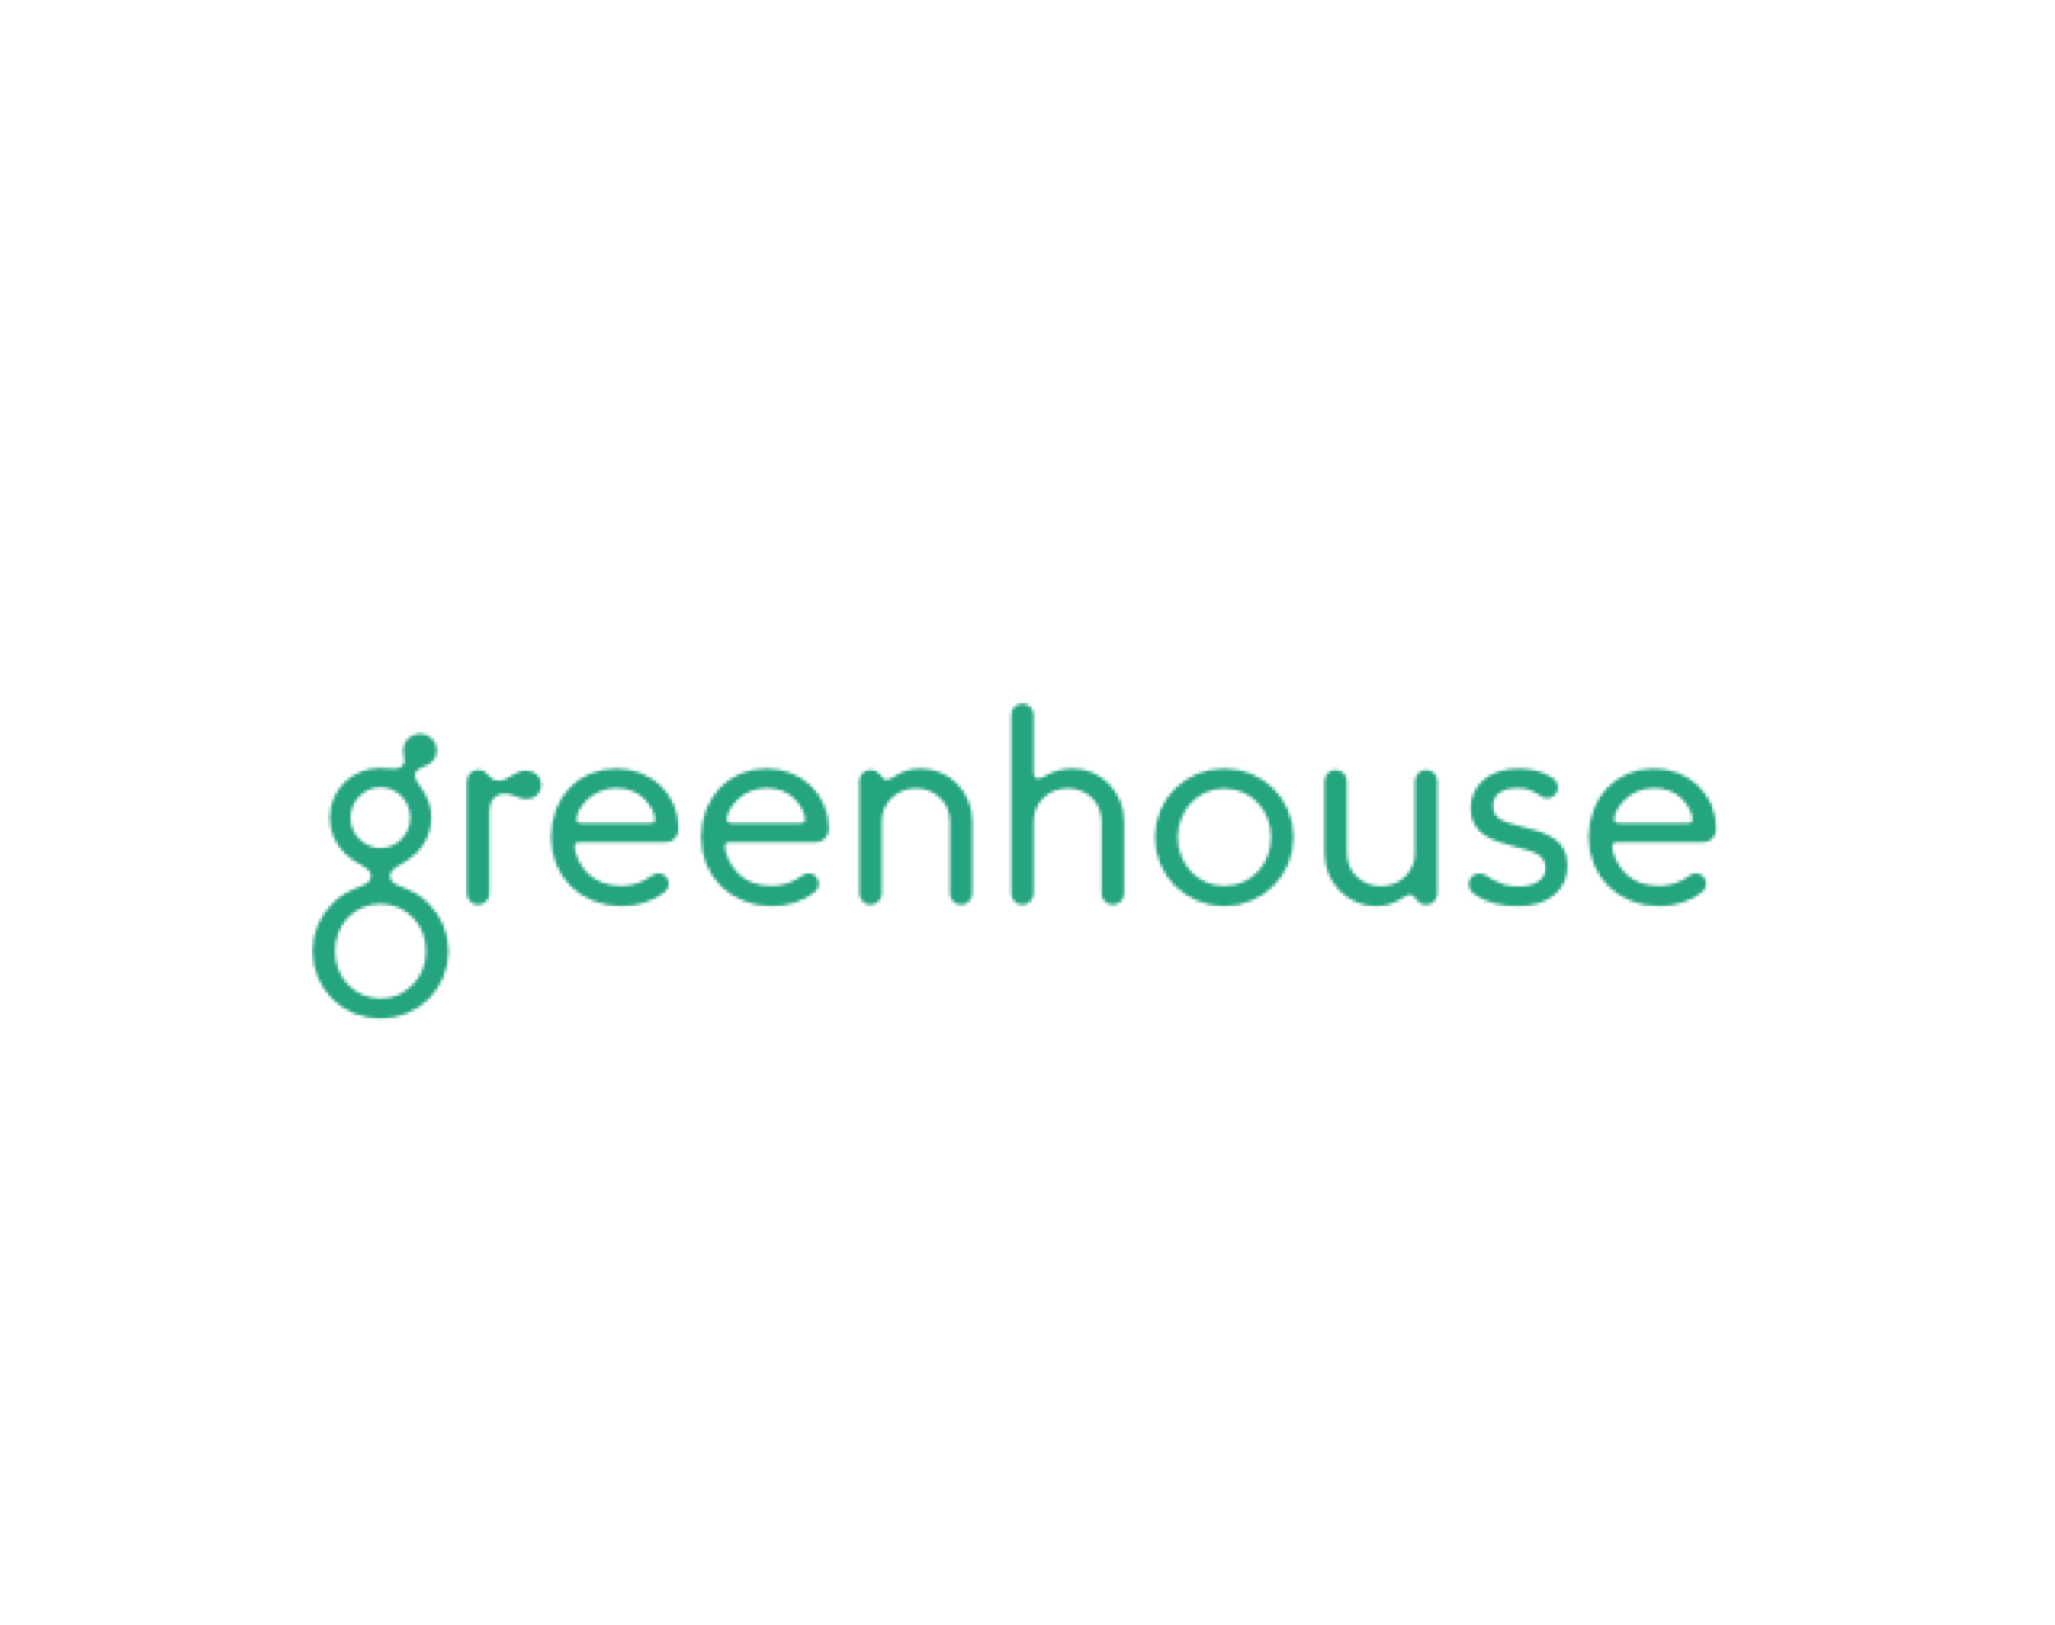 greenhouse description